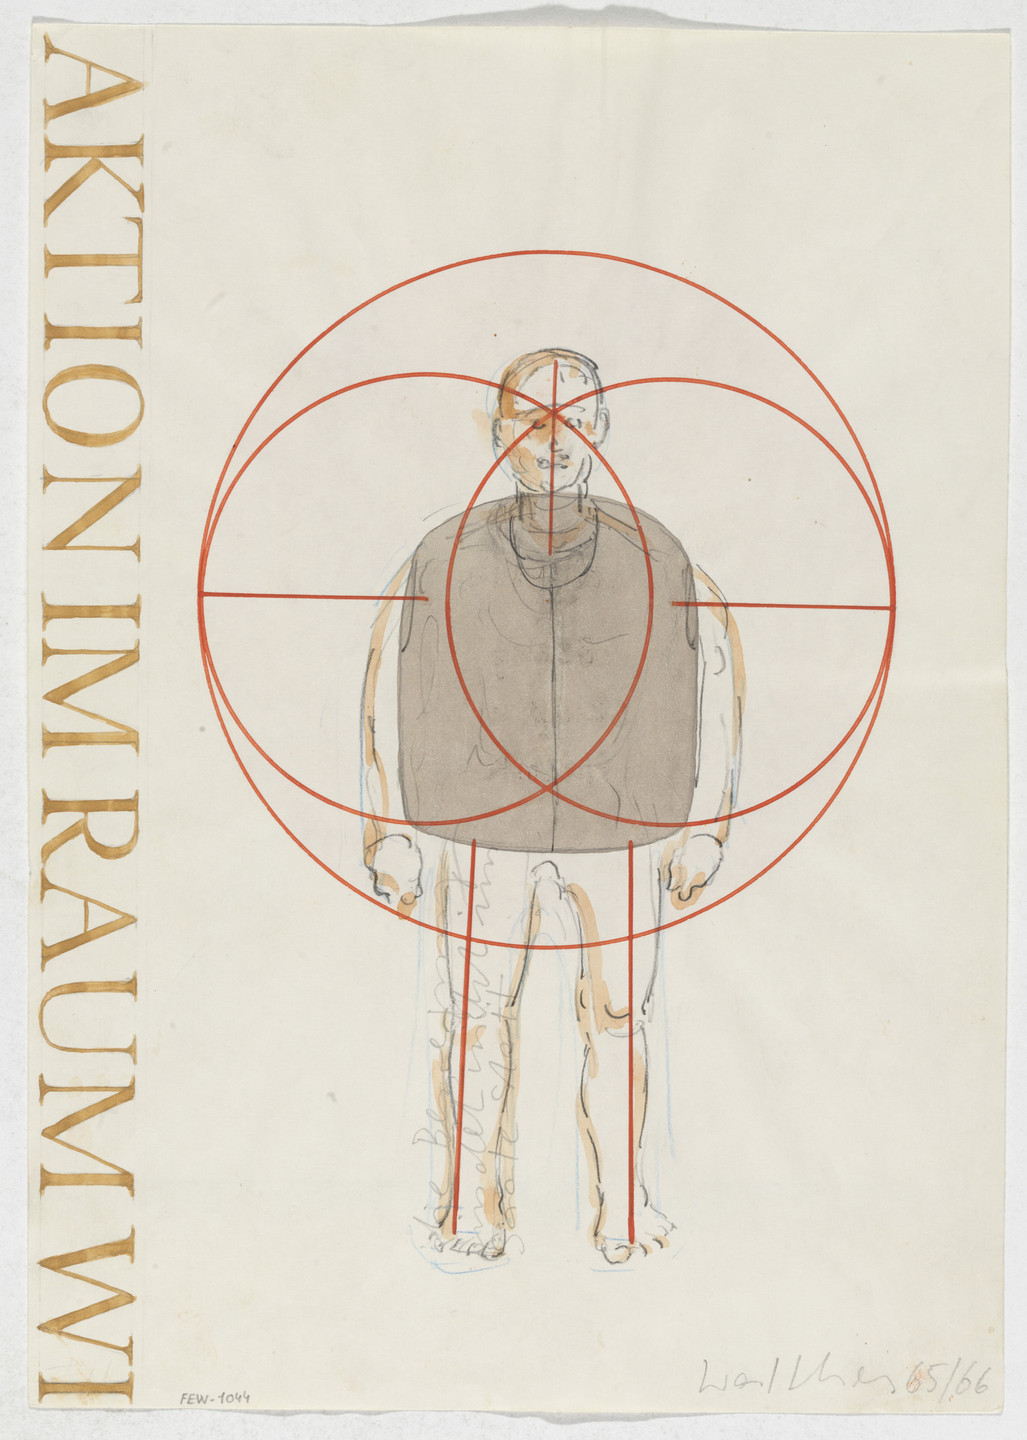 Franz Erhard Walther. Work Drawing: Vest. 1965/1966